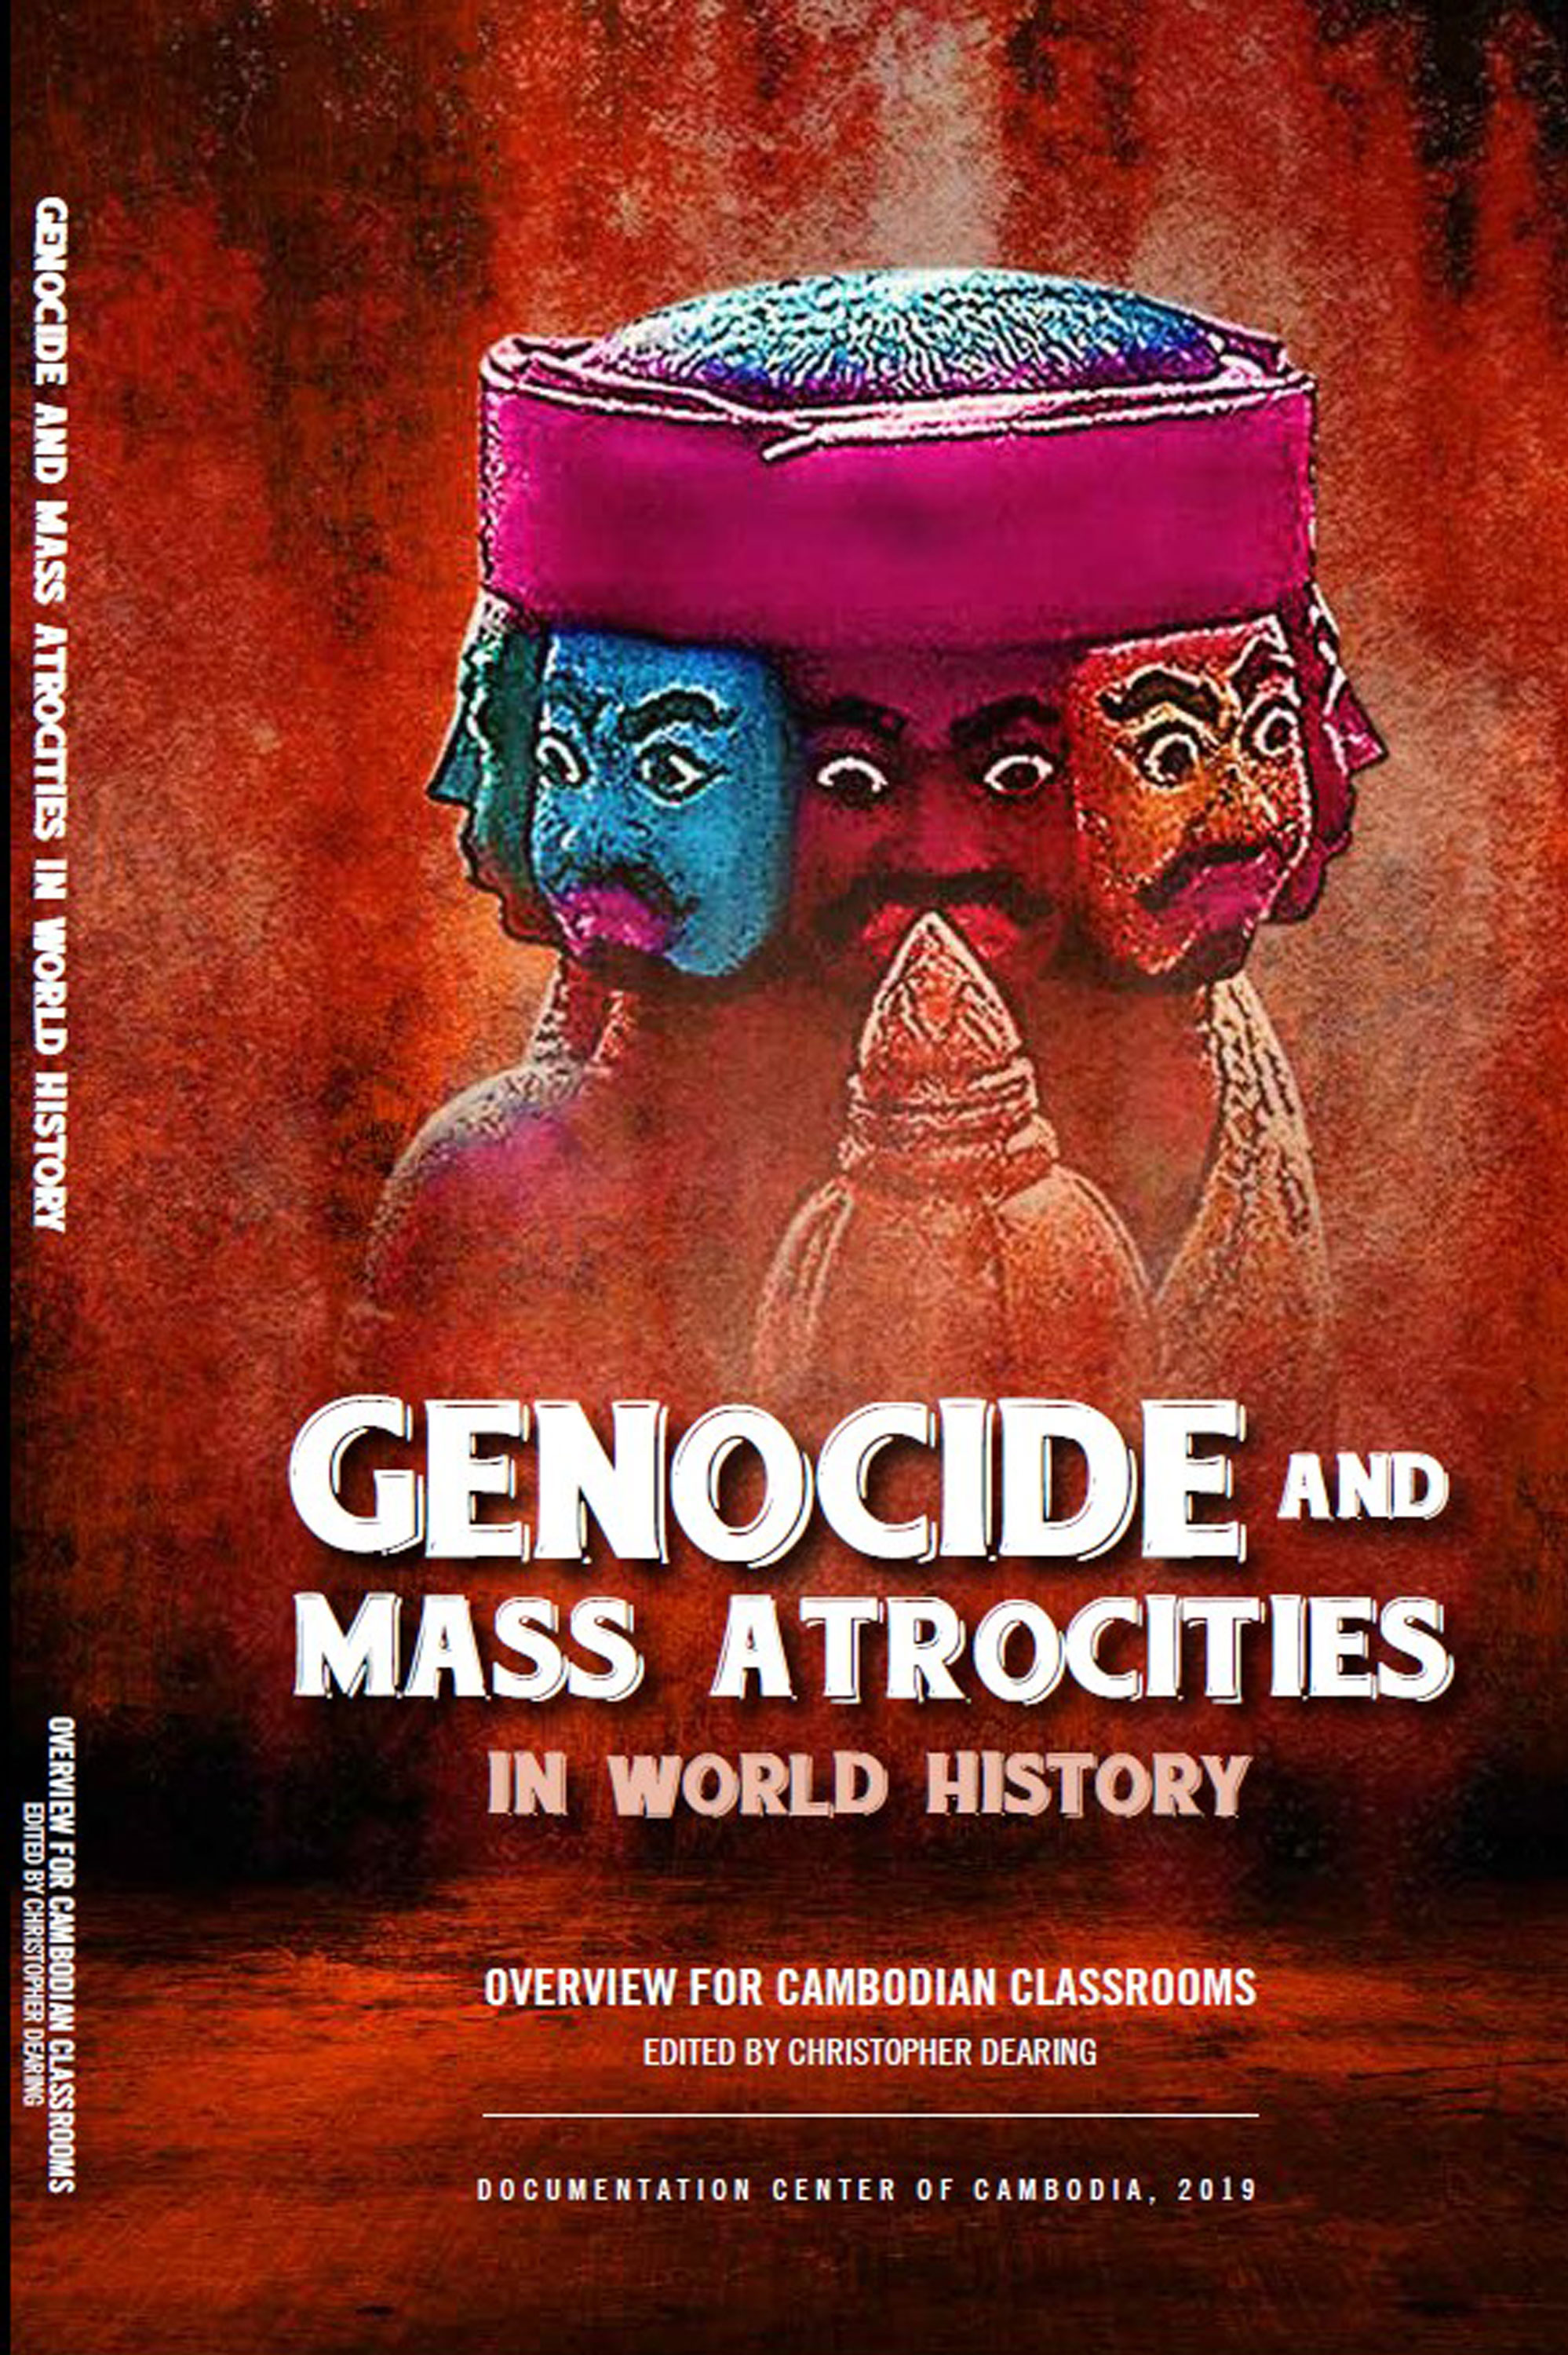 GENOCIDE-AND-MASS-ATROCITIES-IN-THE-WORLD-HISTORY-(2019)